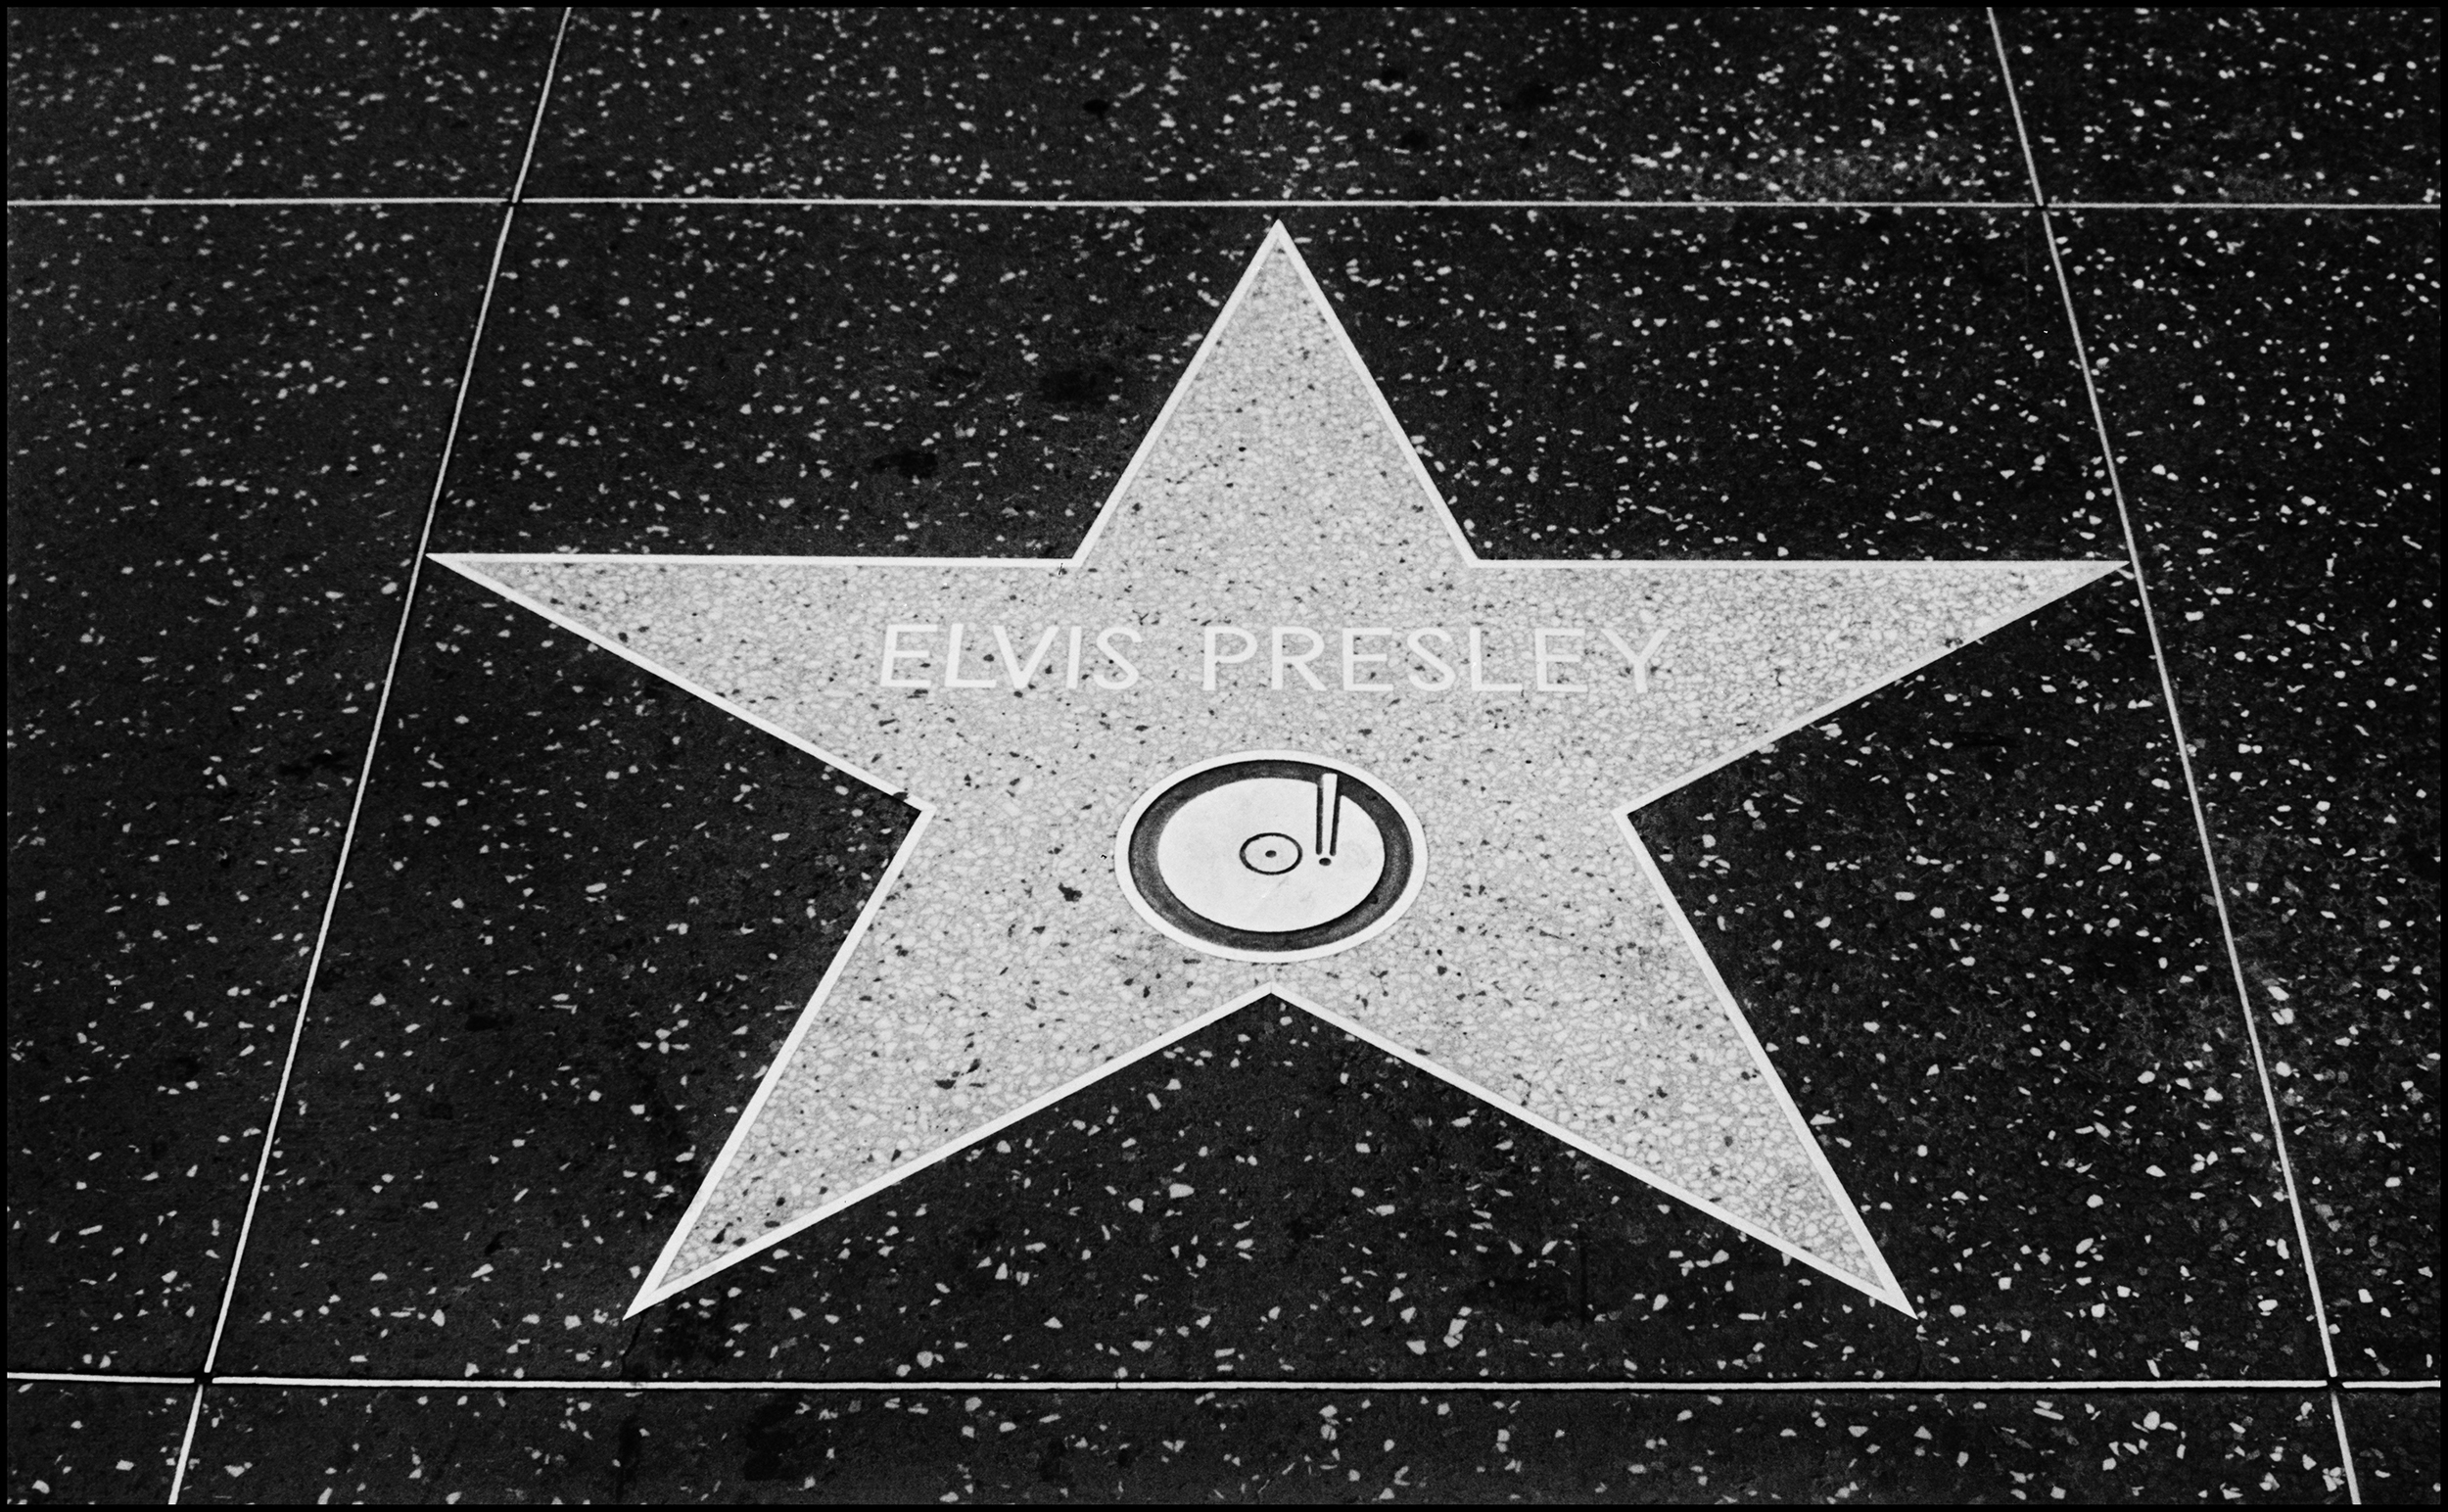 Elvis Presley's Star on Hollywood Blvd 1977  When this photo was taken in 1977 the US had just produced a worldwide phenomena, Star Wars, and I was in Los Angeles on the Thin Lizzy and Graham Parker Tour.  I had seen Star Wars at a press screening in London earlier in the year, but, the chance to see it at the famed Gauman's Chinese Theatre in Hollywood was a something I was not going to miss. With a gig to go to in the evening I decided to attend the 12.00 showing, it had only just recently been released and the cinema was pretty full considering the time of day. Seeing Star Wars on this massive screen in such a legendary Theatre was a great experience, in fact I stayed for the next show and saw it a second time.  Afterwards I wandered off to a comic bookstore to seek out some Star Wars material, I did not realize that I was walking down the Hollywood Walk of Fame, back then it was exactly that, a long line of legendary Actors and Actresses, then, lo and behold, I was standing at Elvis Presley's Star. He was of course well past his prime at this point in his career, but that afternoon standing by his star had quite an effect on me. He may have had his career ruined by entering the Army, or more likely by making too many bad films, but you can't deny his ability as a stage performer.  The following year I was at a Ted Nugent Concert at Hammersmith Odeon, we heard the news that Elvis had died during the encore, I was going to visit with Phil Lynott after the gig and broke the news to him. Philip was deeply affected by hearing of Elvis's death, he went to his room and wrote King's Call.  The NME put him on the cover the following week, just a photo, no words, there was nothing you could say really, other than the King was Dead...